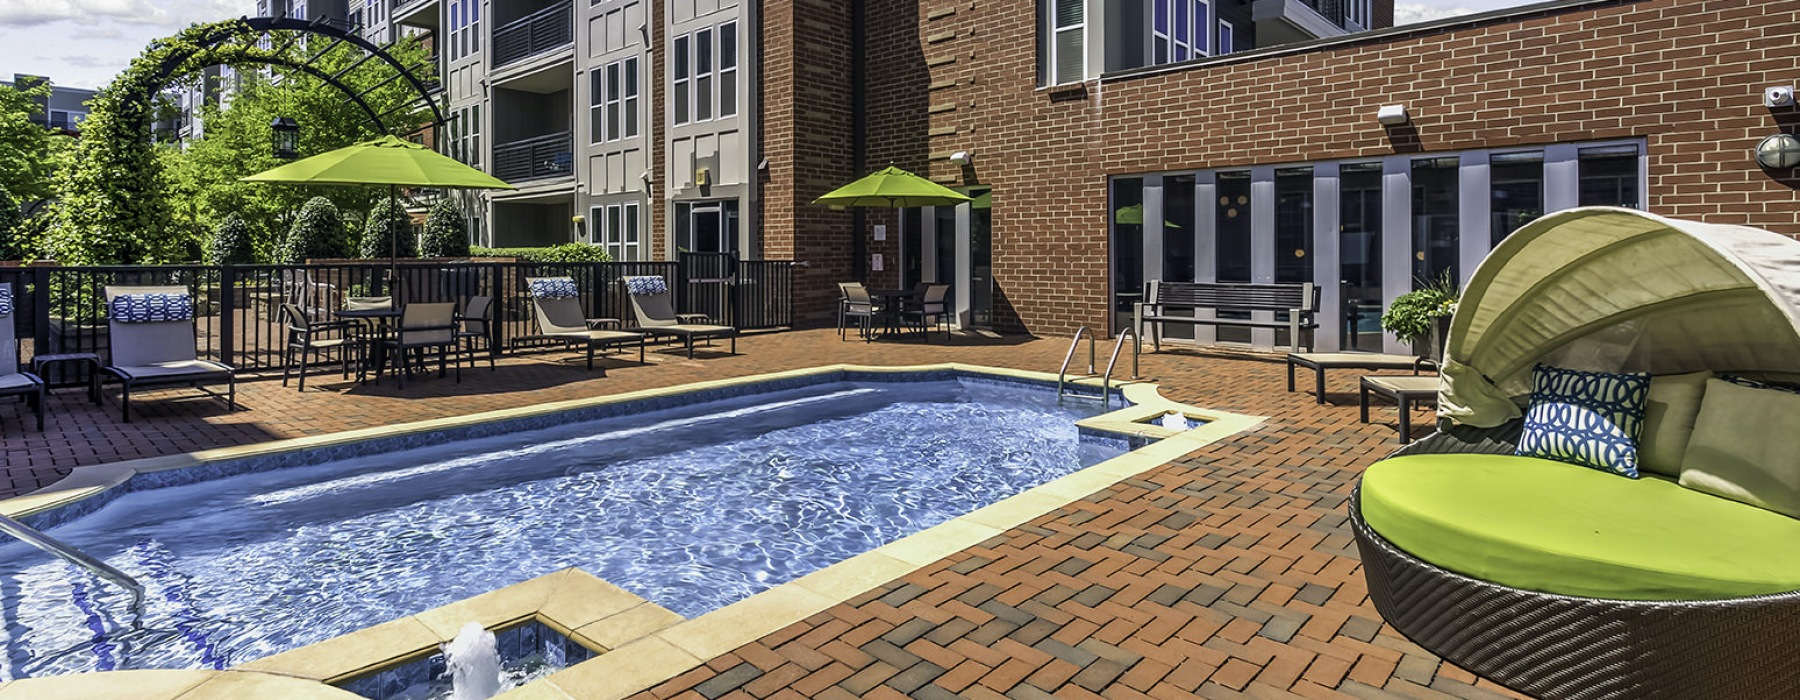 Pool with shaded lounge seating by tall brick apartment building